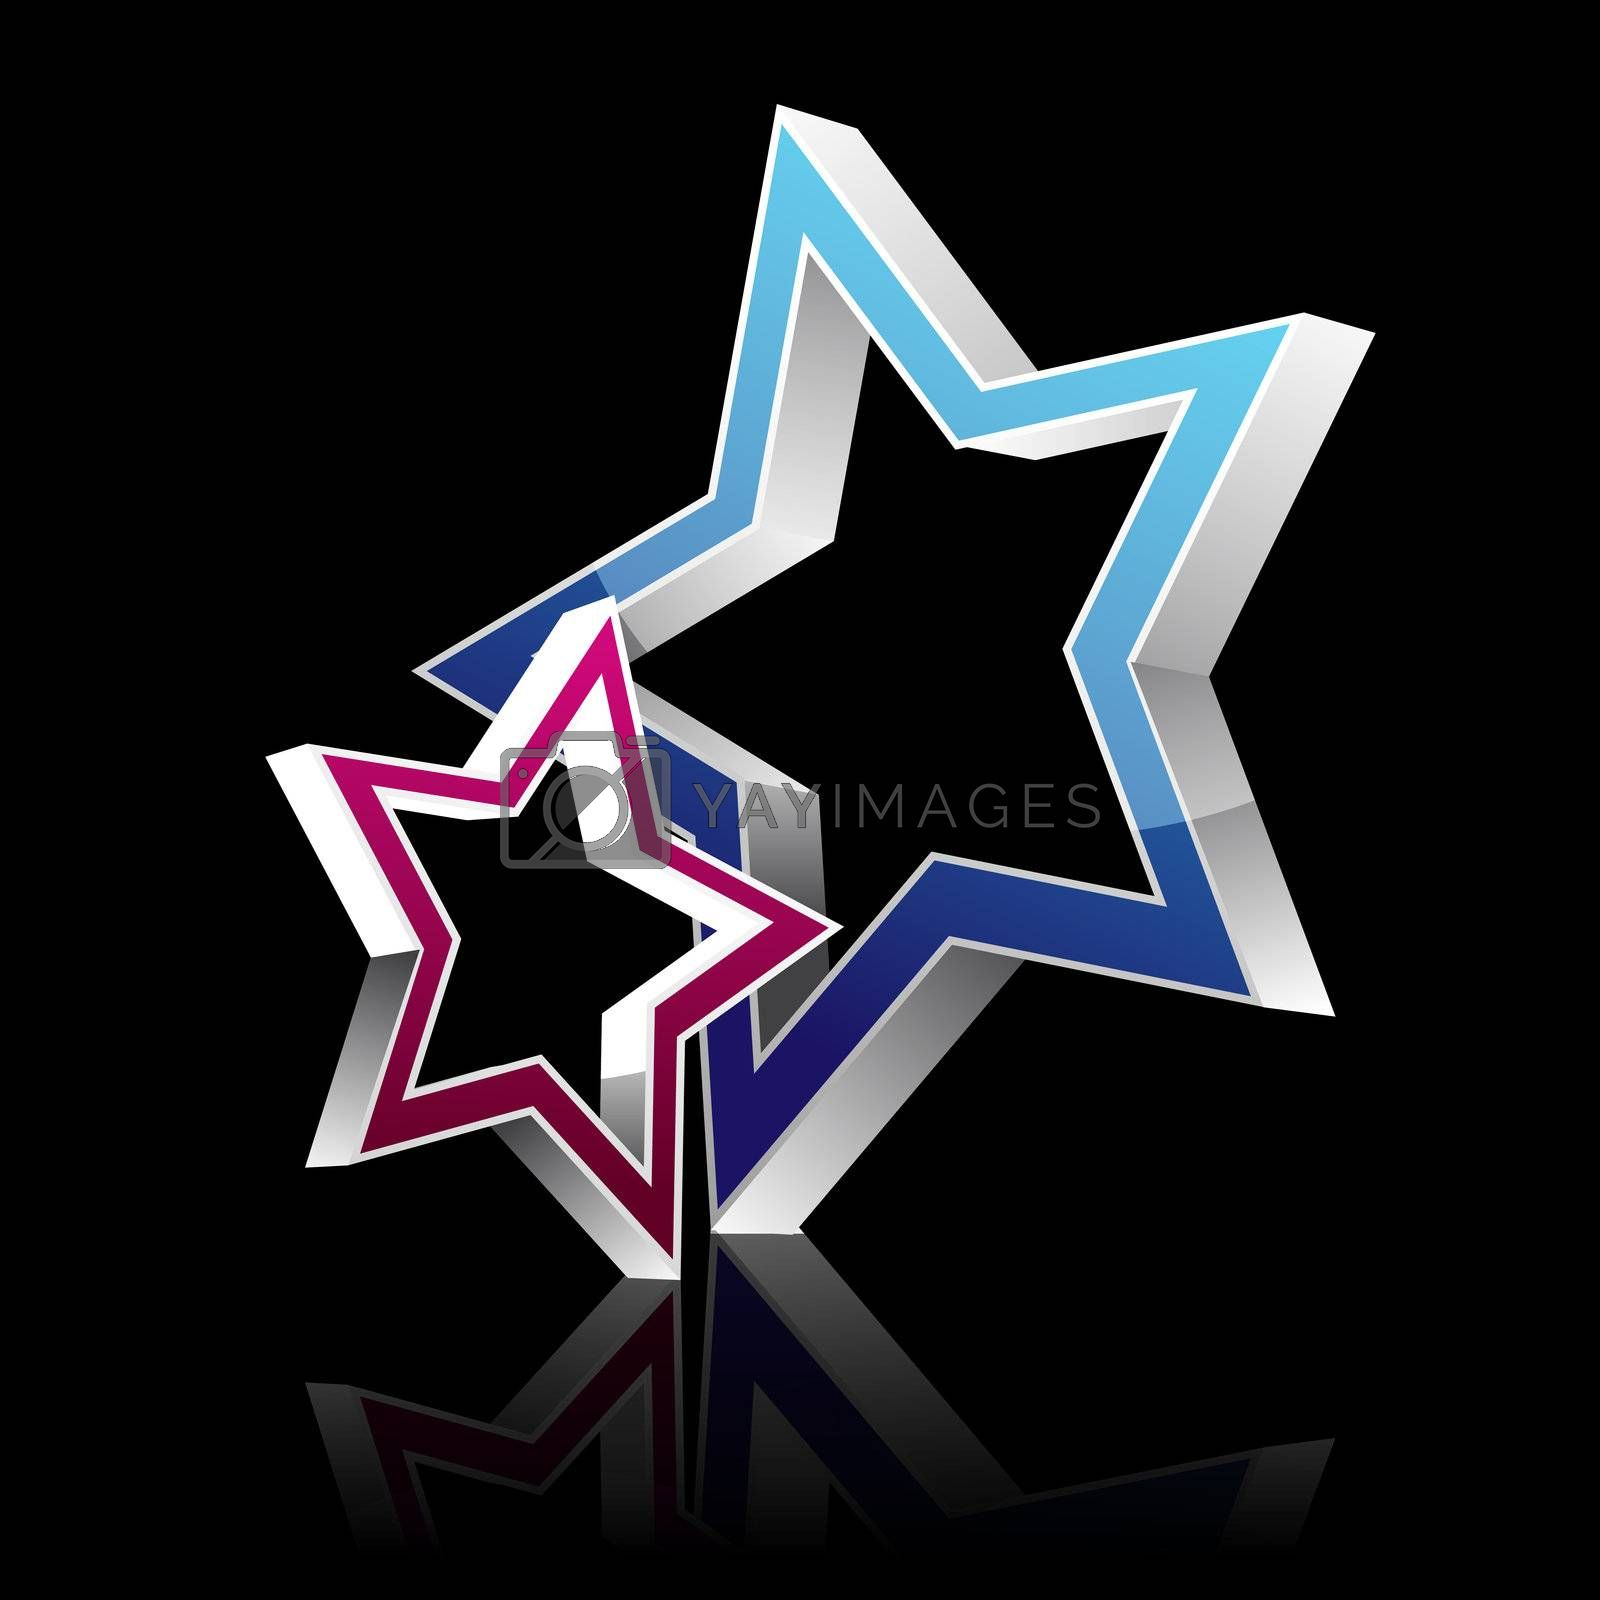 Royalty free image of vector star by get4net